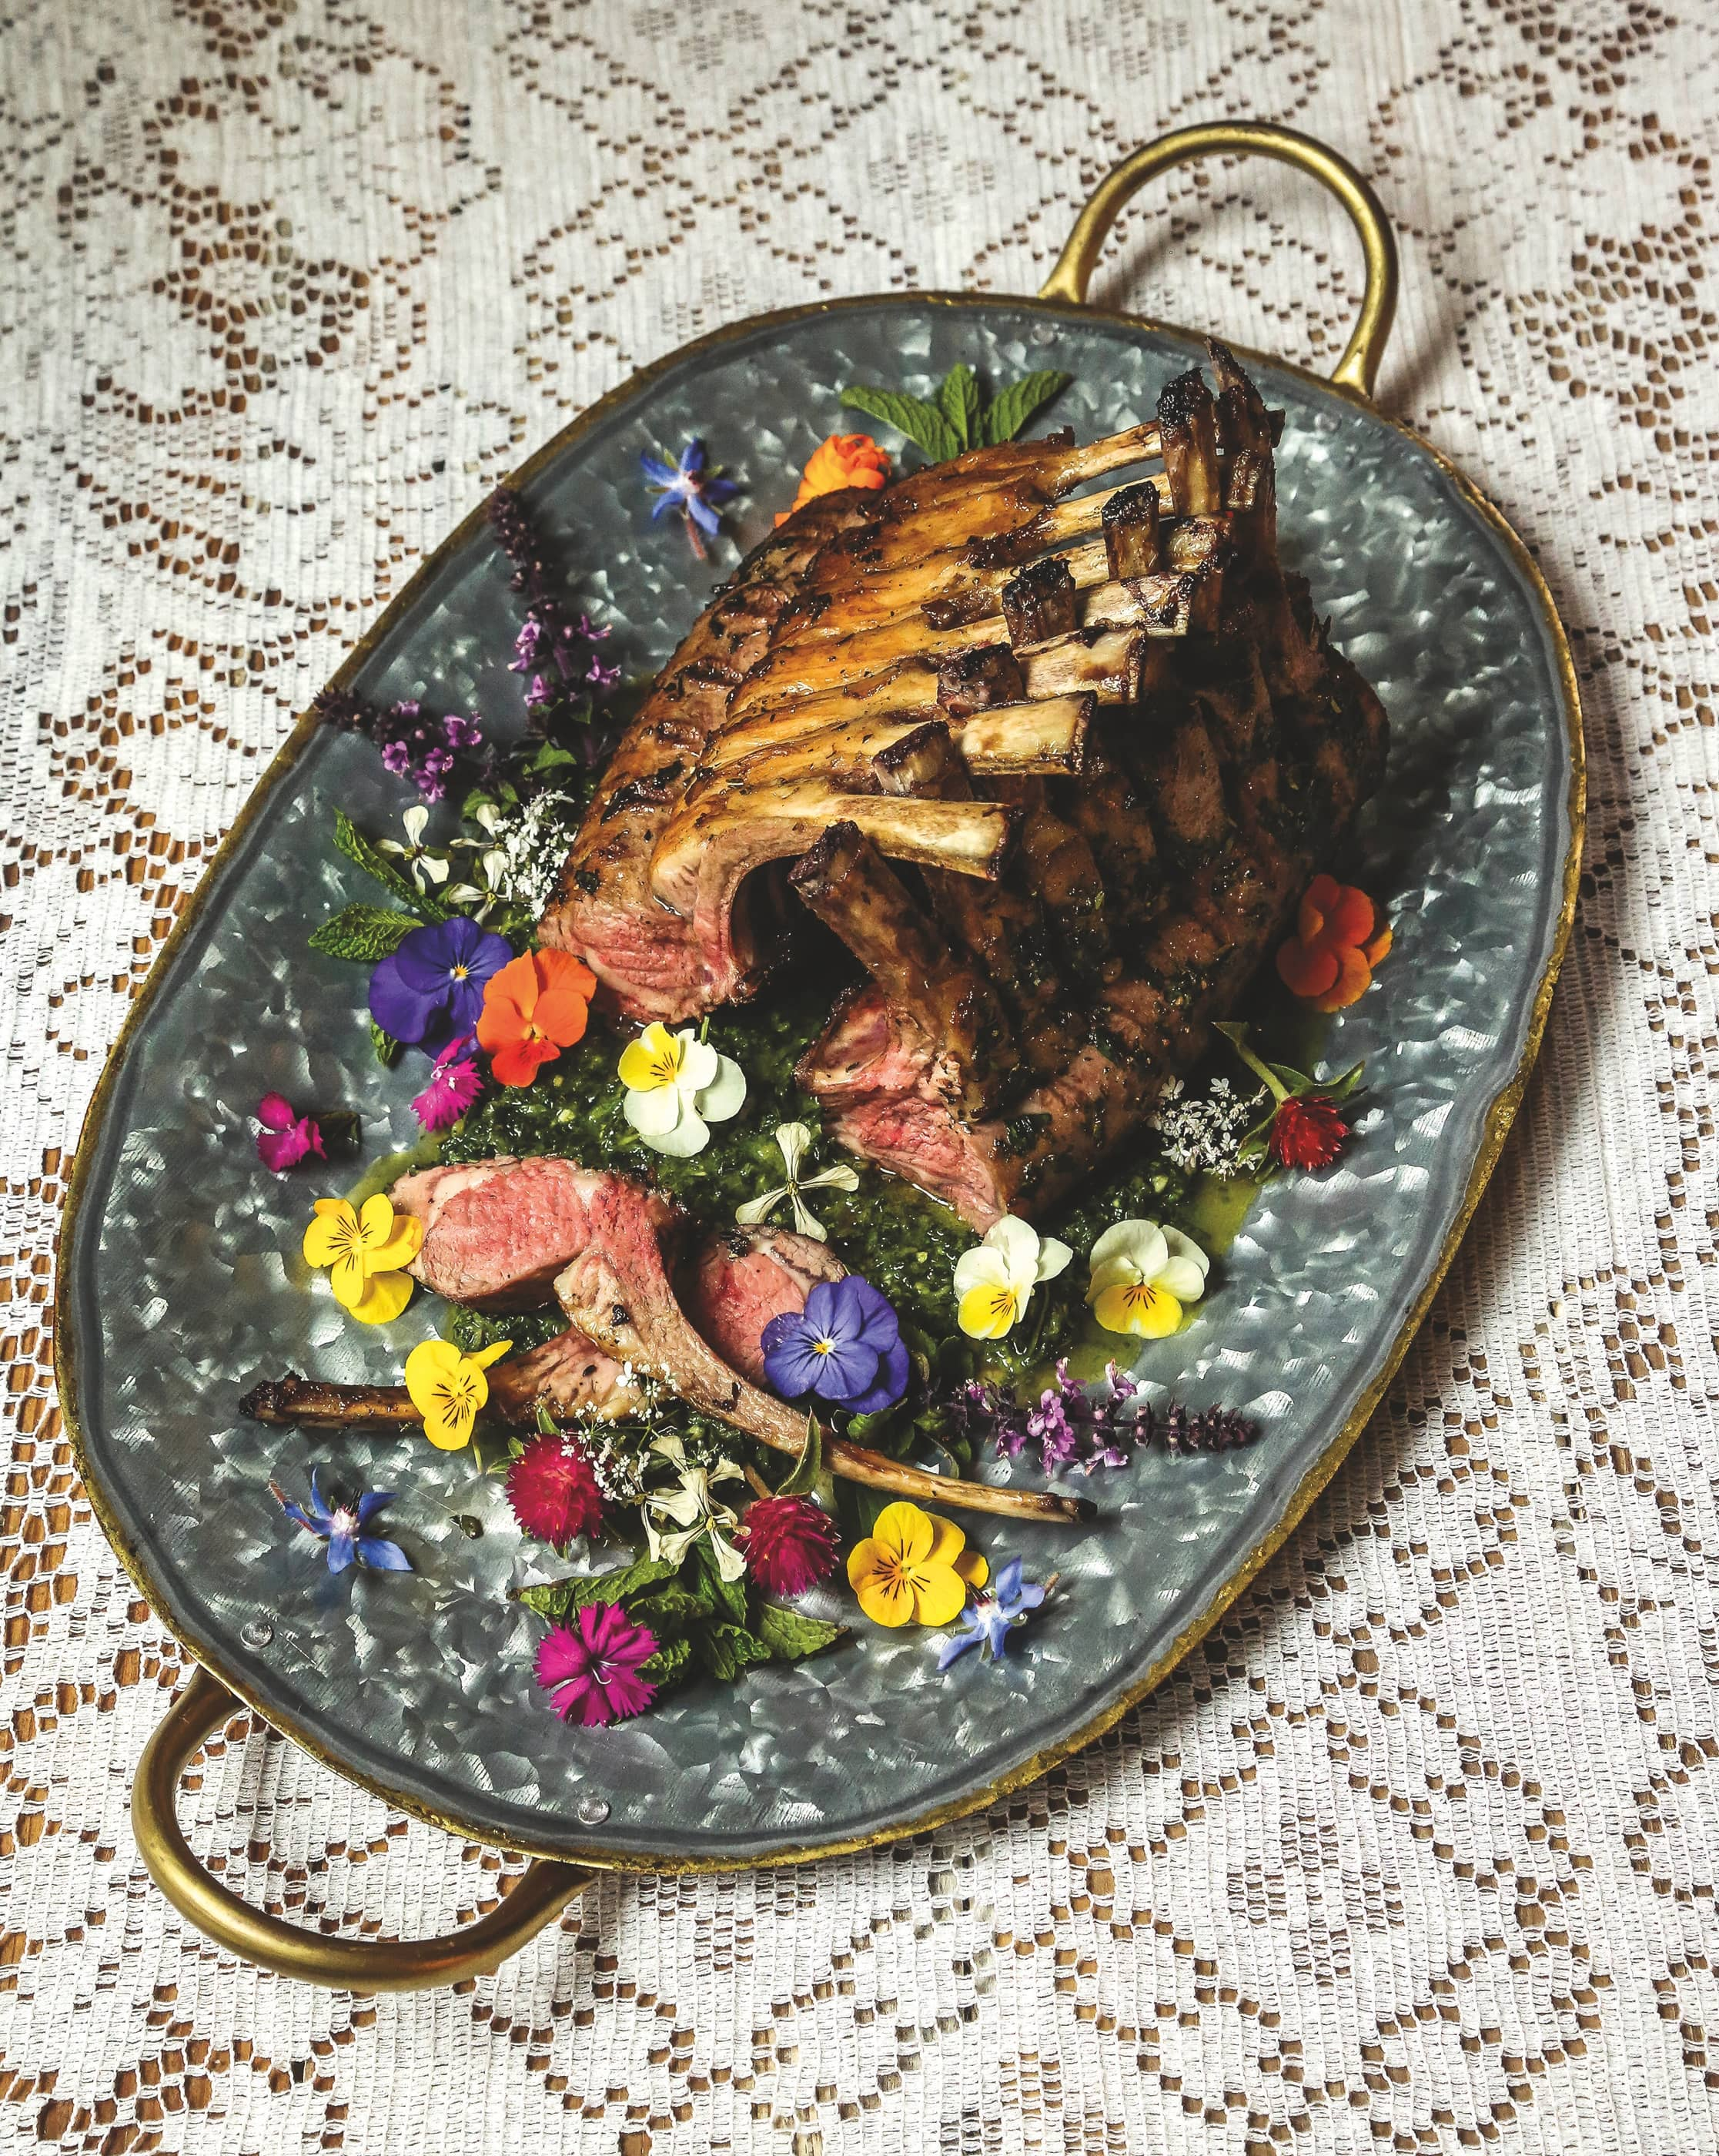 RACK OF LAMB WITH MINT CHIMICHURRI AND EDIBLE FLOWERS